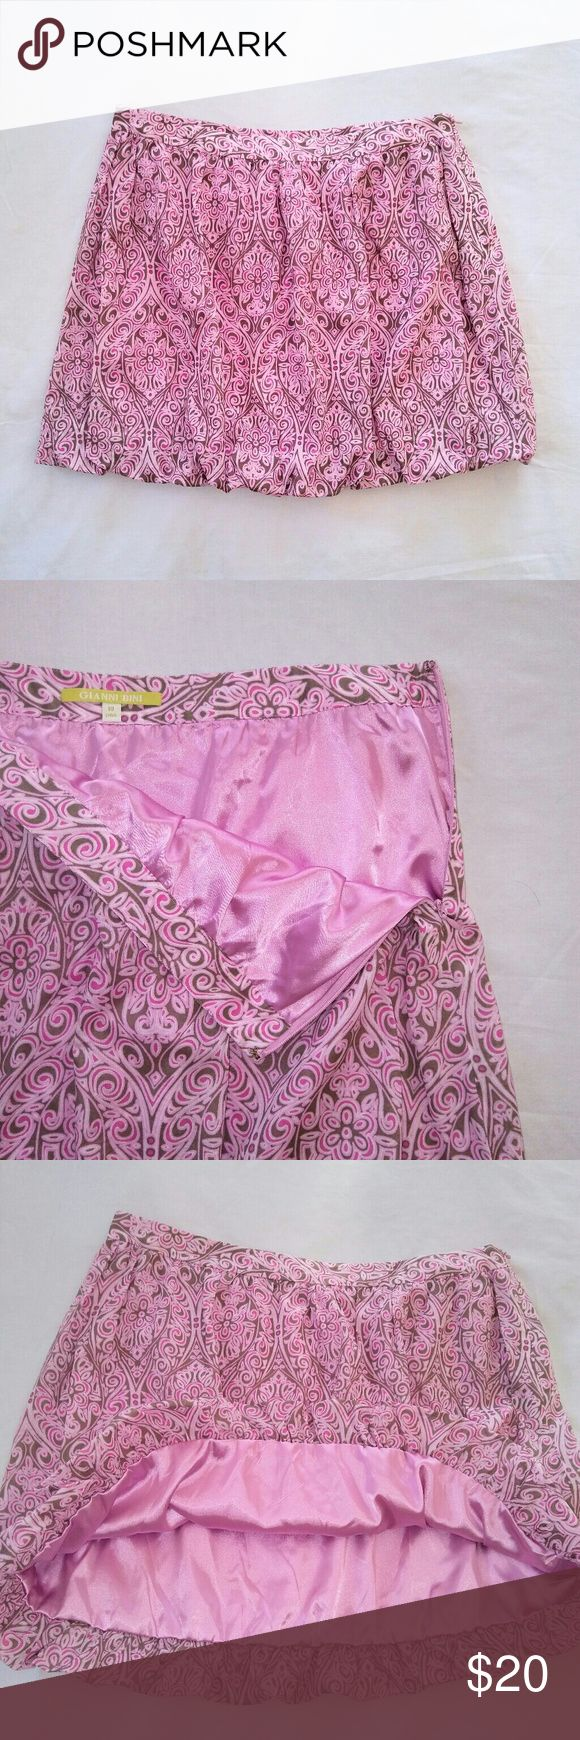 GIANNI Bini Skater Skirt Gianni Bini Pink Skater Skirt / Bubble Skirt. Side zipper & hook + loose elastic band in hem to make bubble effect. Women's 10. In excellent used condition. From a smoke free home. Make an offer! Gianni Bini Skirts Circle & Skater